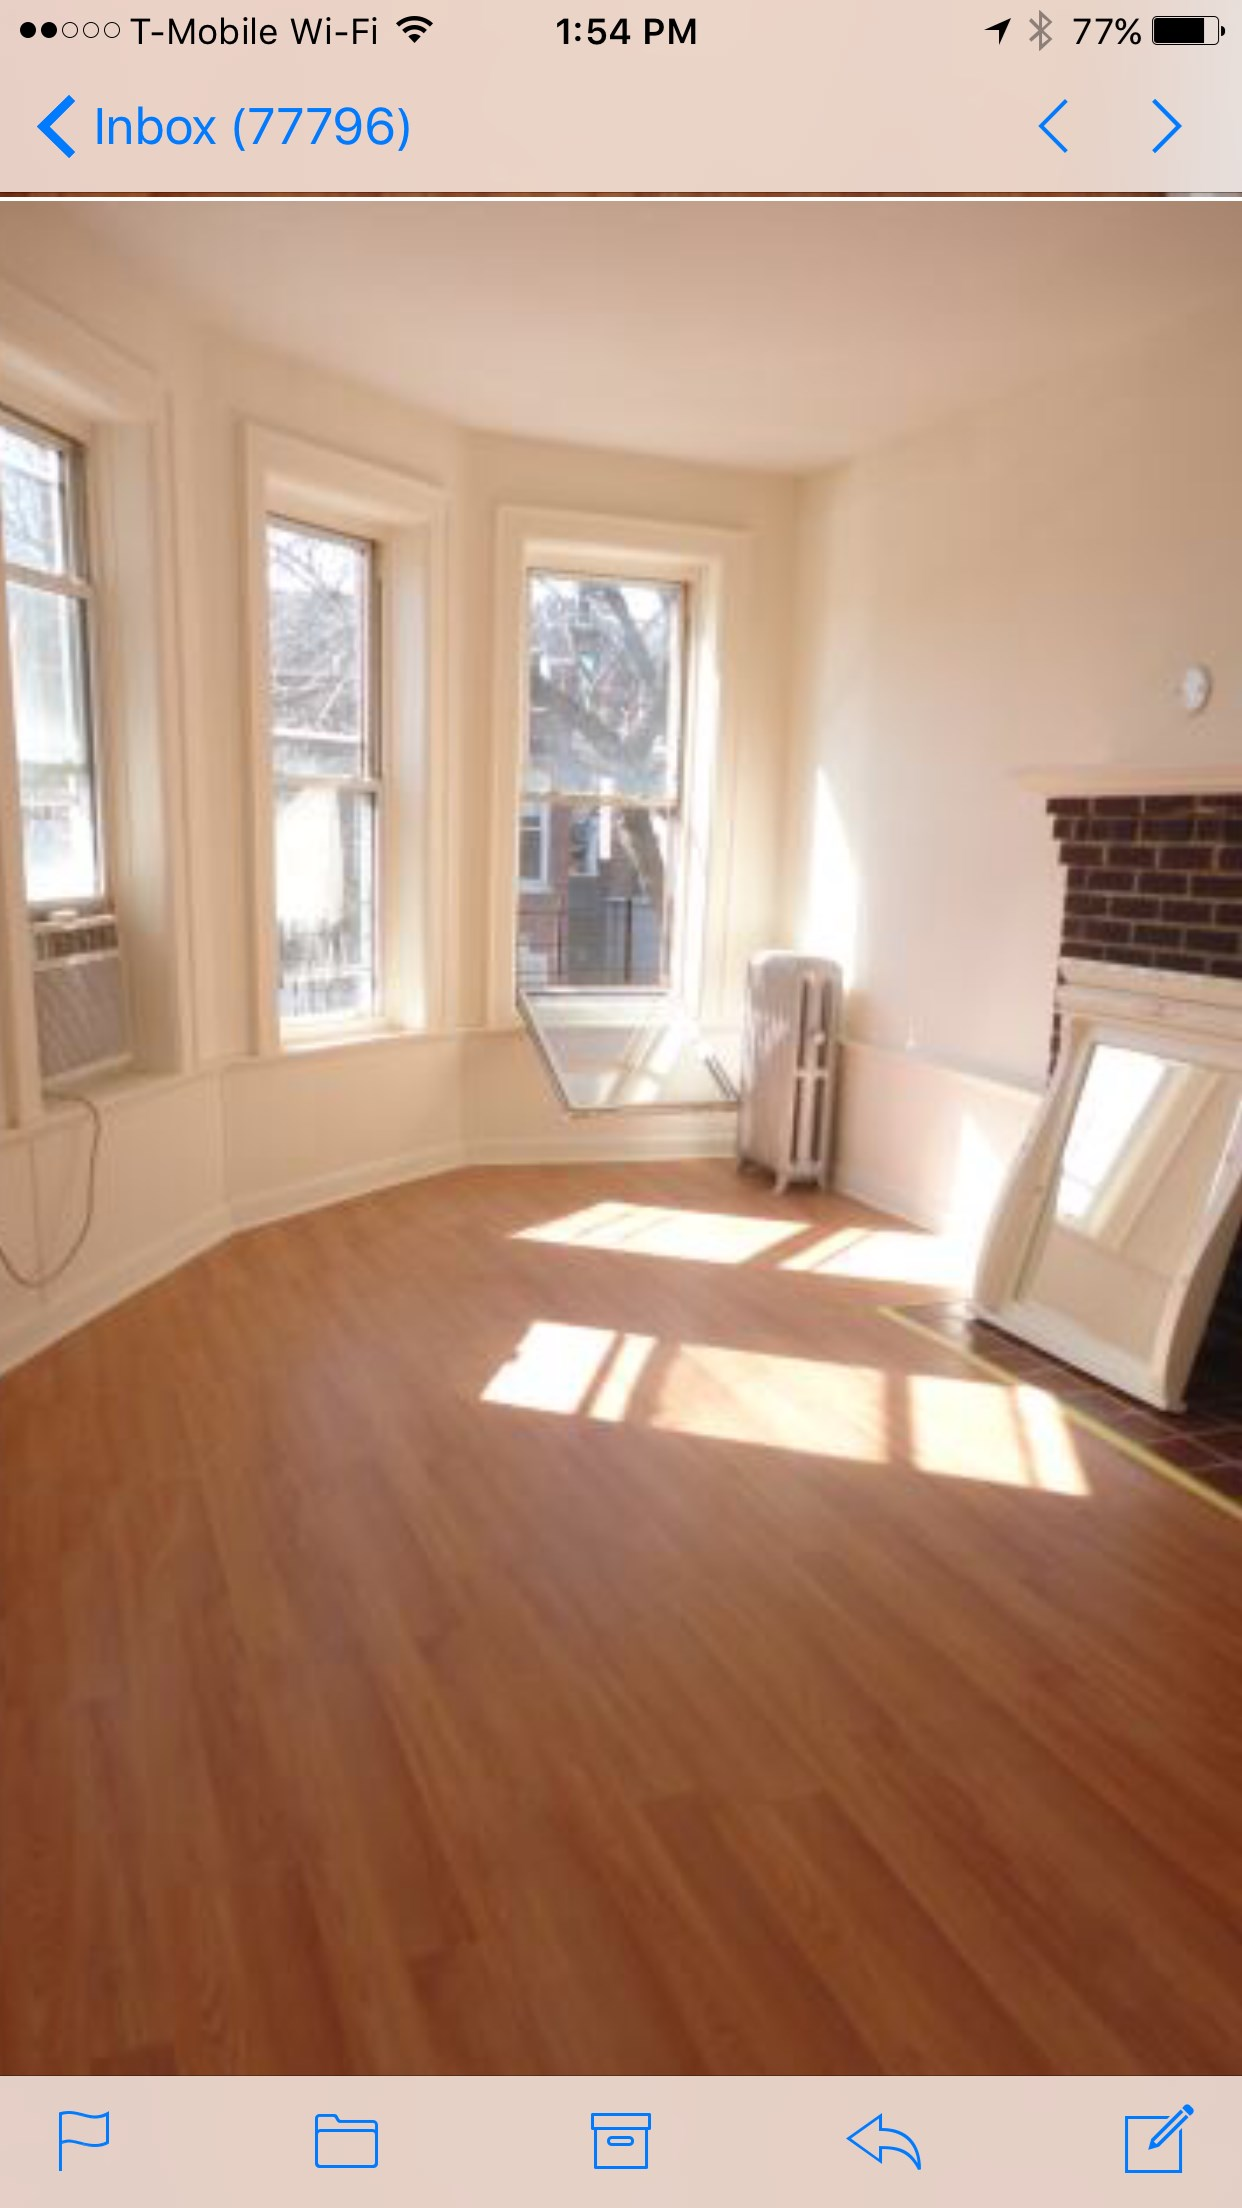 House for Rent in New York - Apartments, Flats, Commercial ...